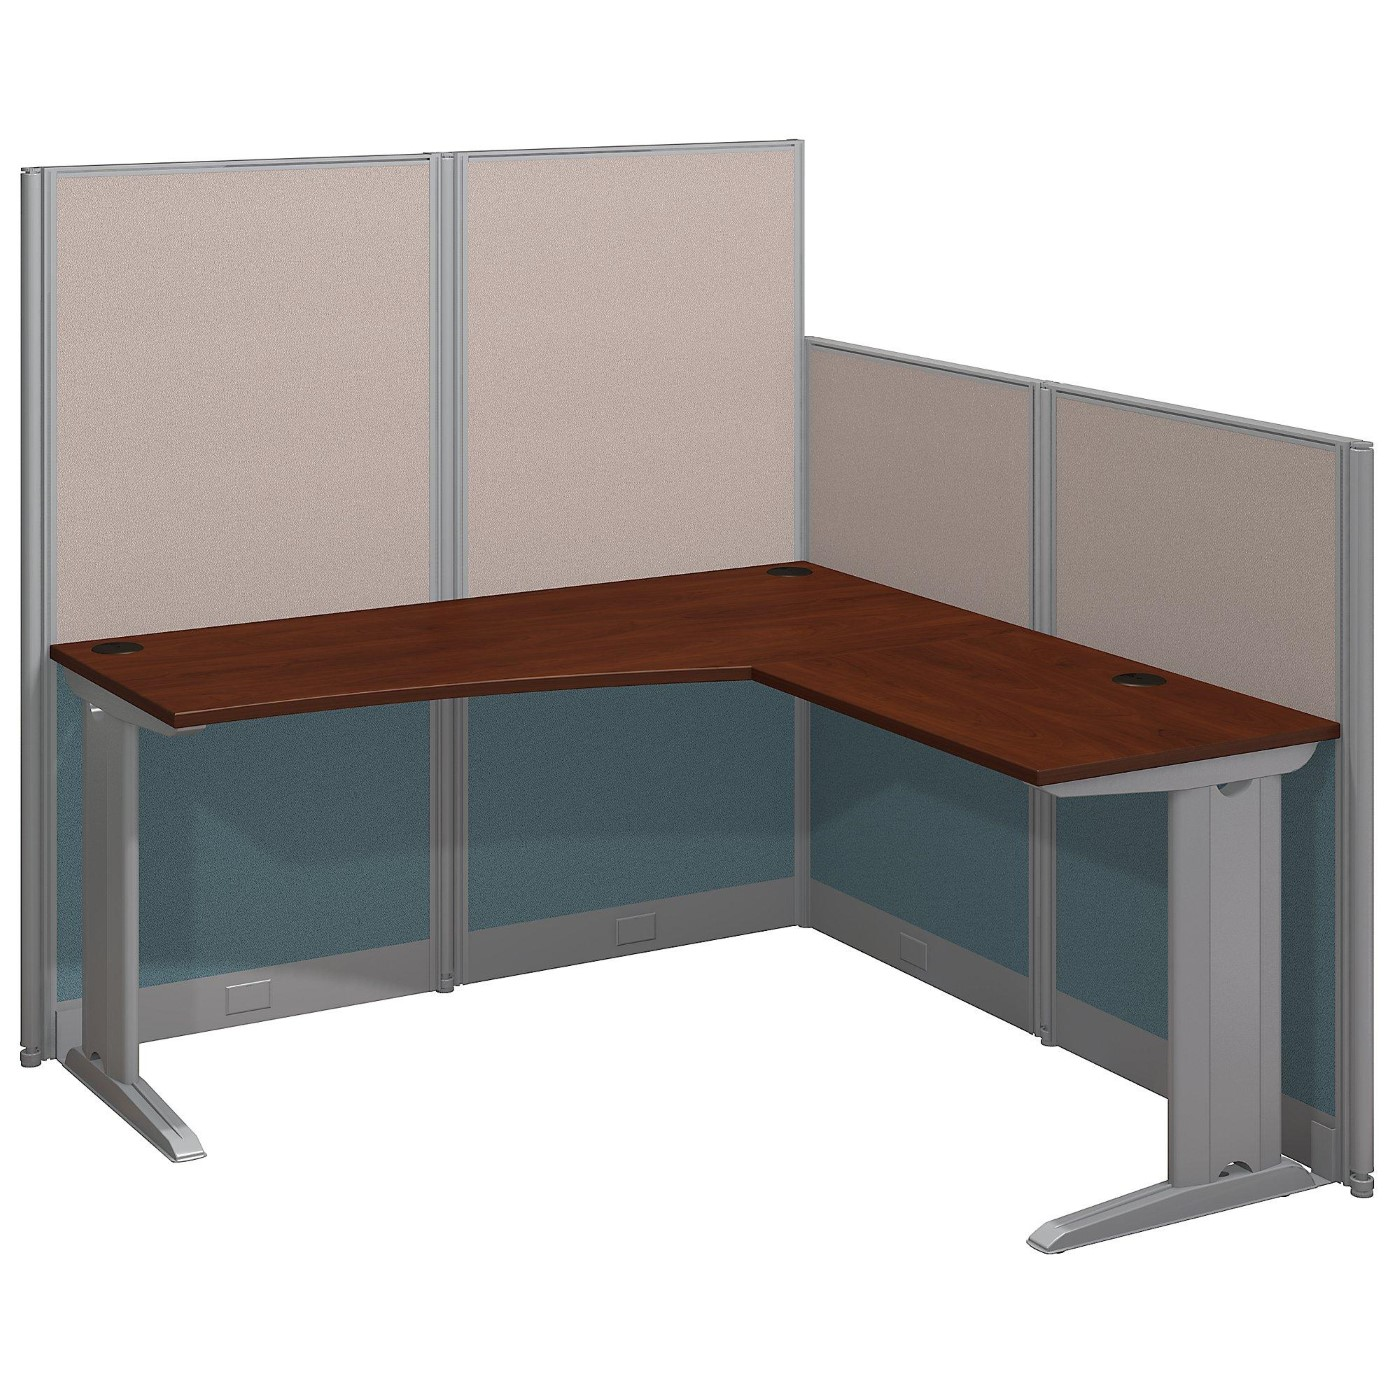 <font color=#c60><b>BUSH BUSINESS FURNITURE OFFICE IN AN HOUR 65W X 65D L SHAPED CUBICLE WORKSTATION. FREE SHIPPING</font></b>